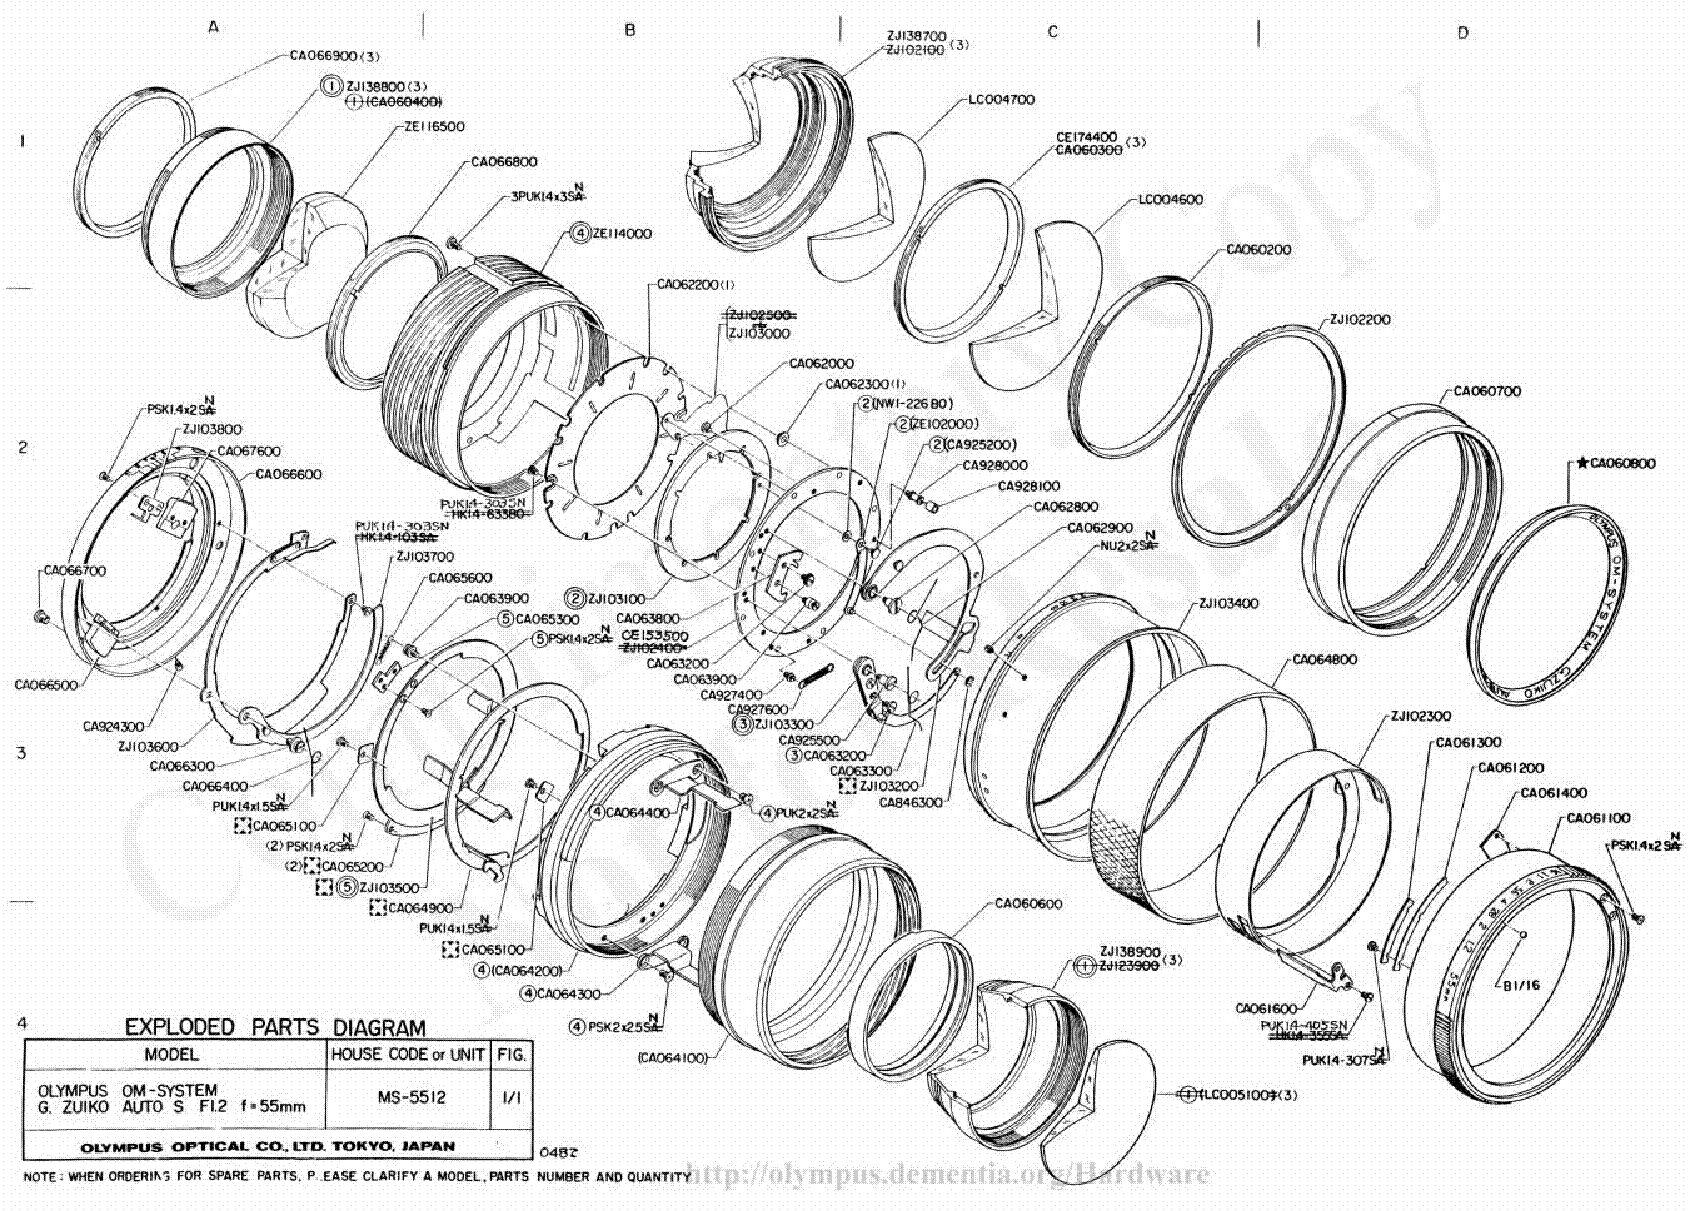 olympus 55mm f1 2 exploded parts diagram service manual download  schematics  eeprom  repair